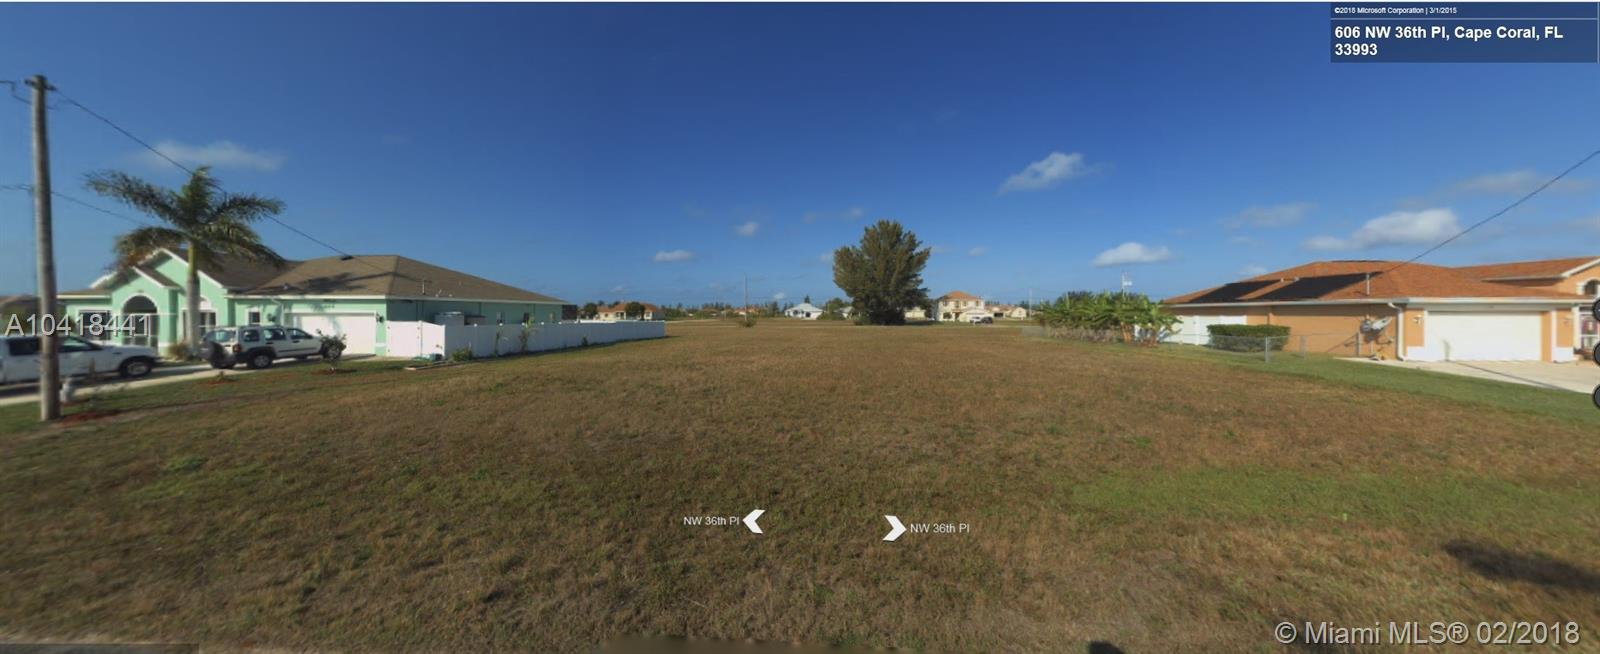 606 NW 36, Other City - In The State Of Florida, FL 33993